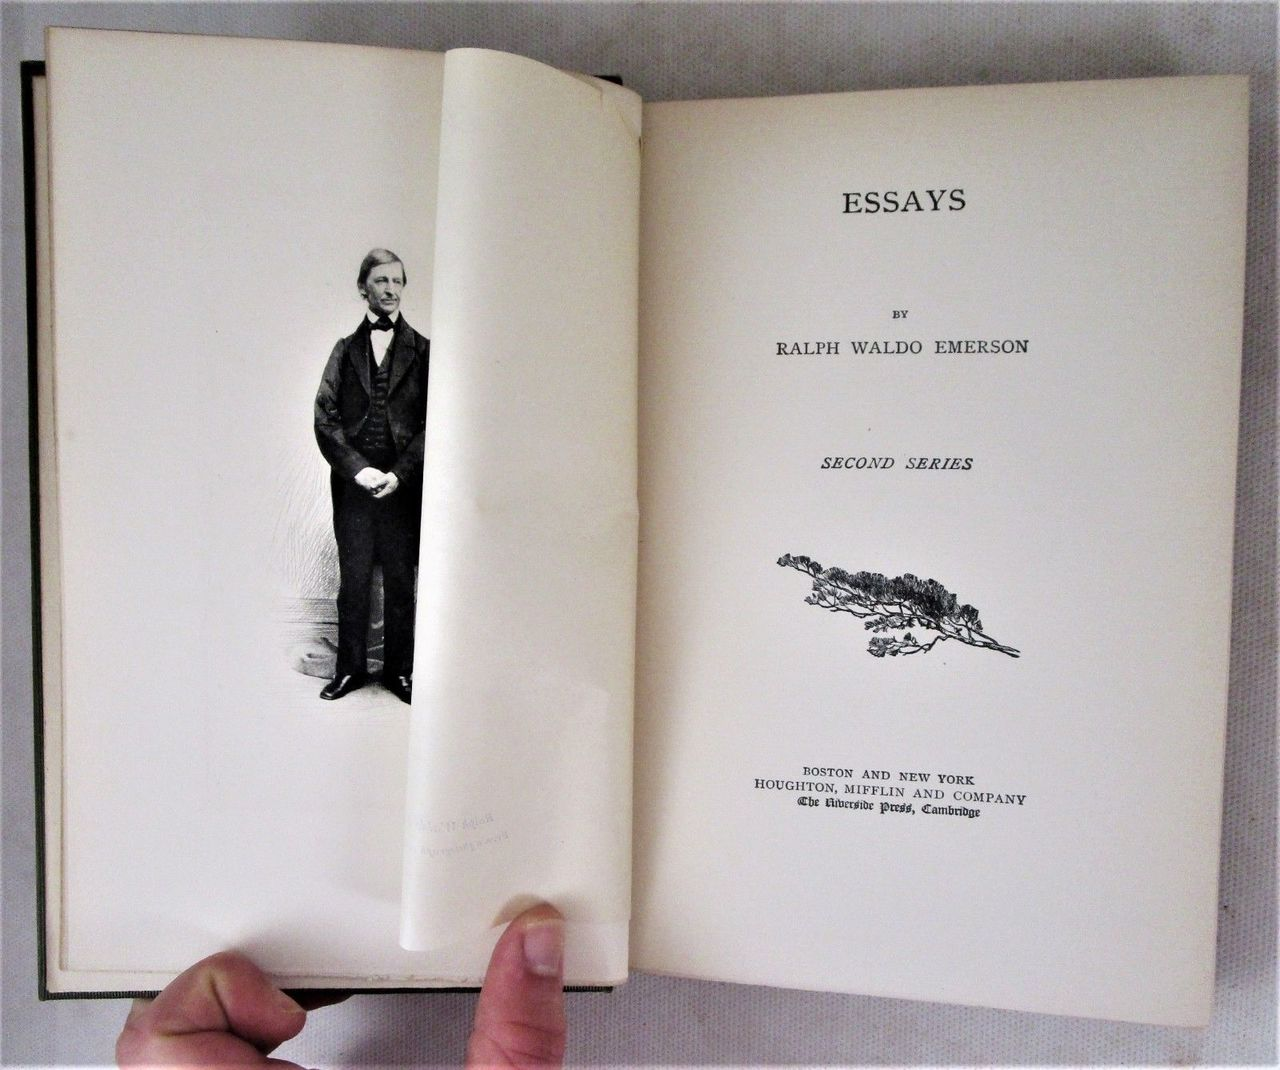 THE WORKS OF RALPH WALDO EMERSON - 1883/7 [12 Vols]